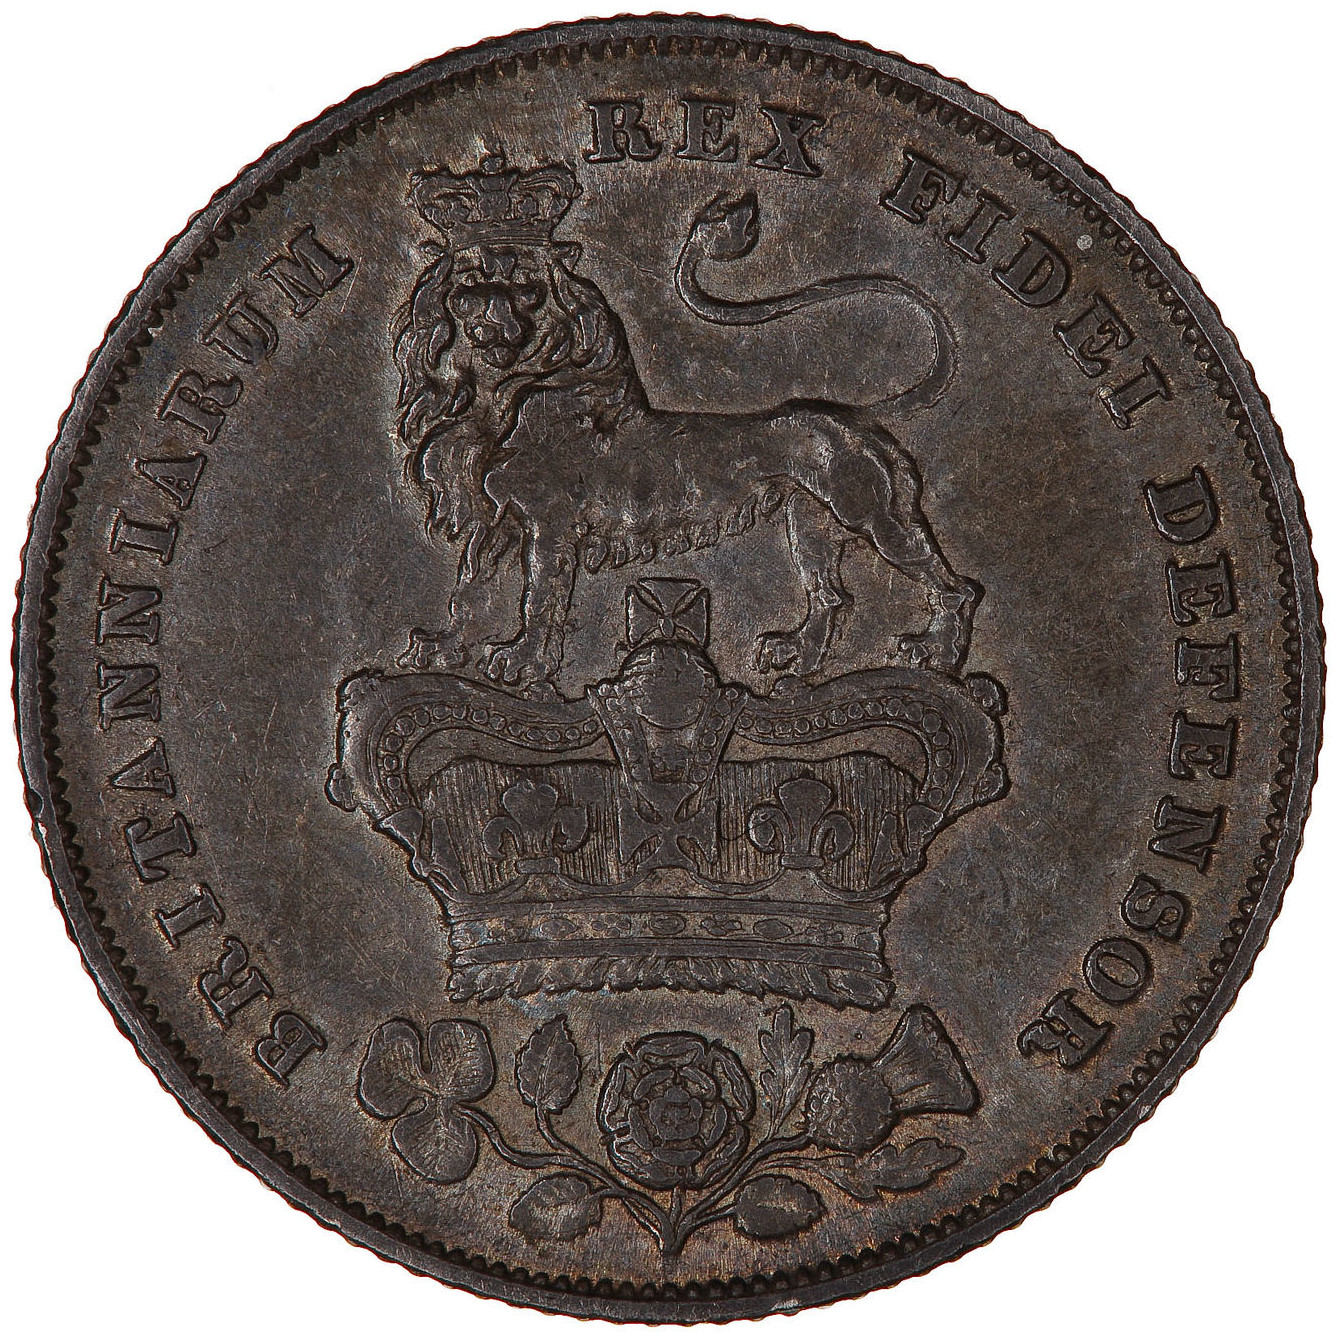 Shilling 1826: Photo Coin - Shilling, George IV, Great Britain, 1826